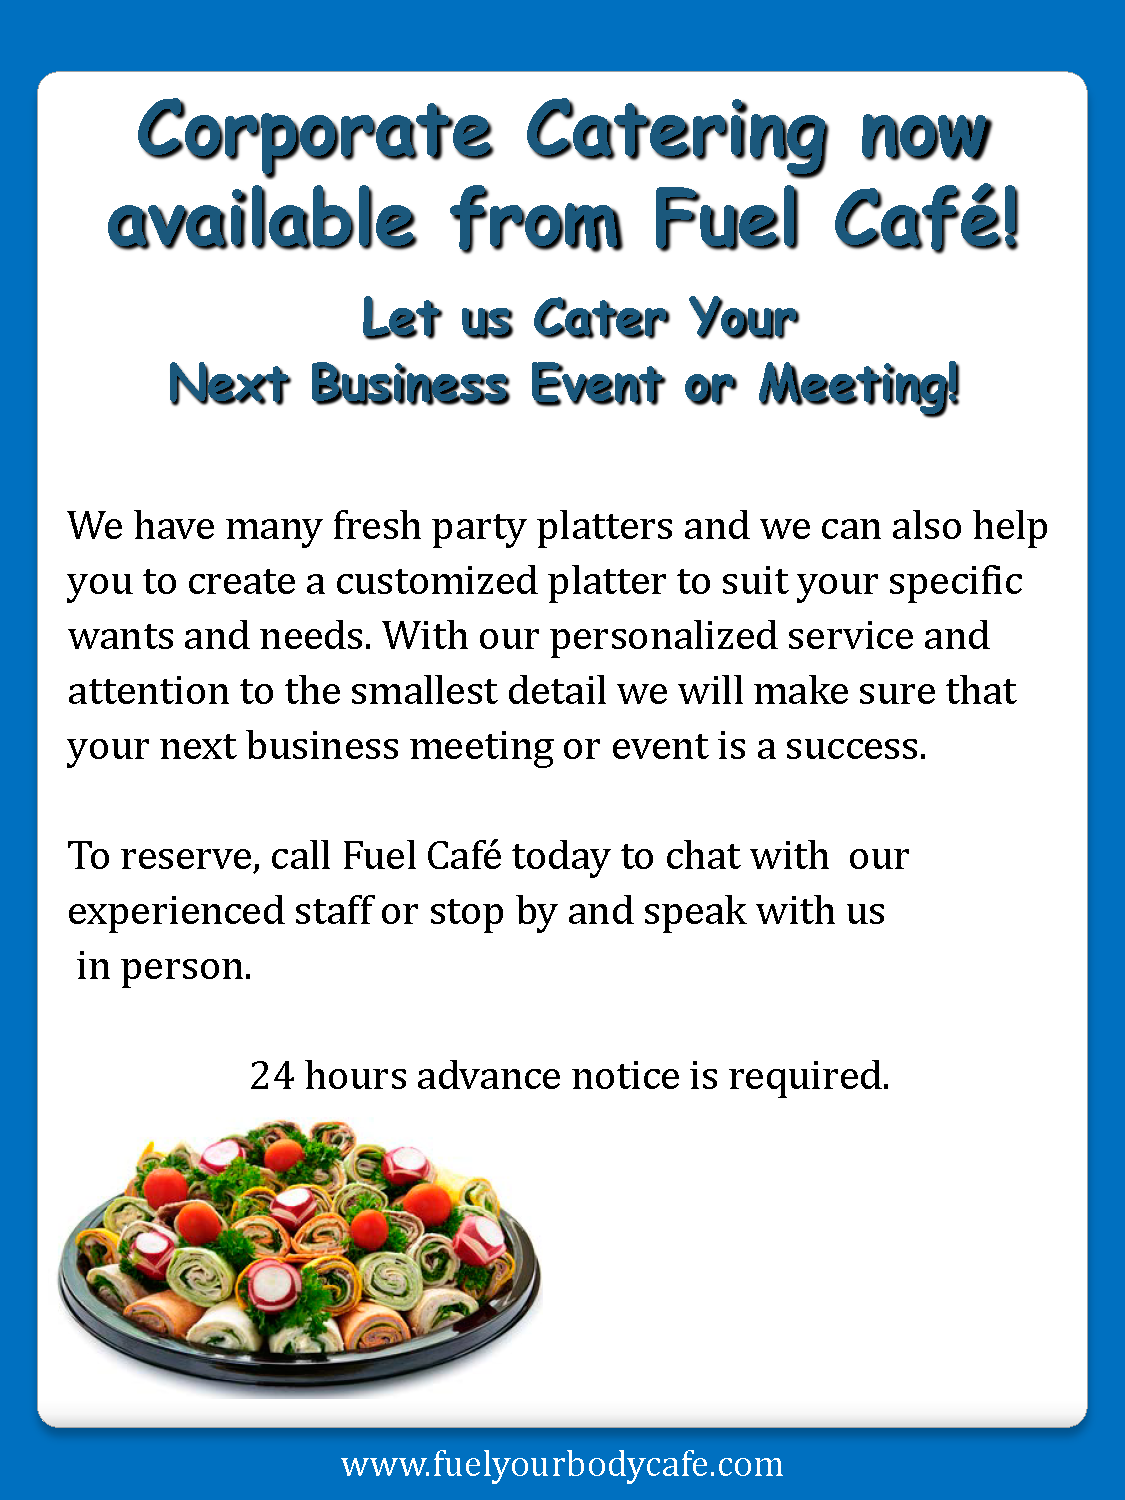 Corporate Catering now available from Fuel Café! Let us Cater Your Next Business Event or Meeting! We have many fresh party platters and we can also help you to create a customized platter to suit your specific wants and needs. With our personalized service and attention to the smallest detail we will make sure that your next business meeting or event is a success. To reserve, call Fuel Café today to chat with our experienced staff or stop by and speak with us in person. 24 hours advance notice is required.